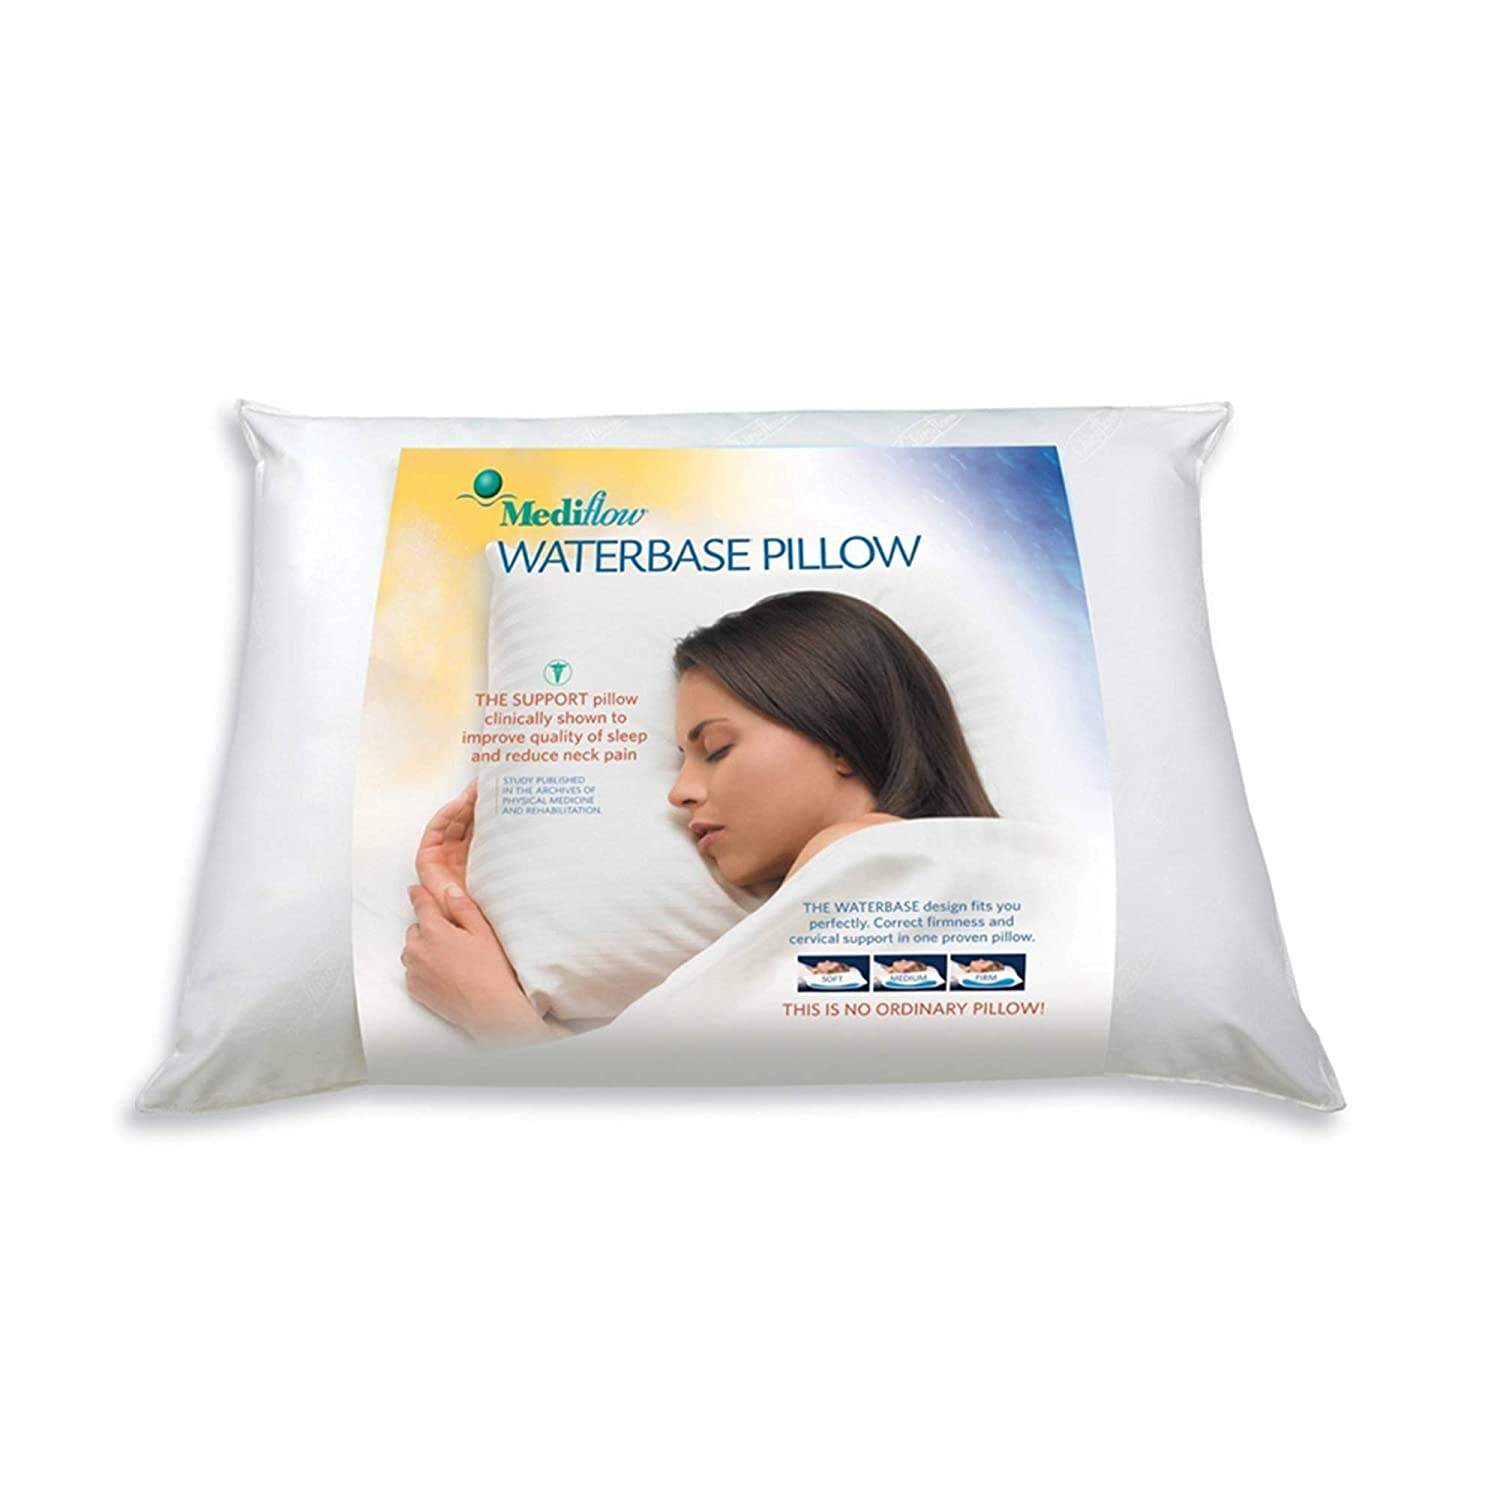 Mediflow The first & original water pillow, clinically proven to reduce neck pain